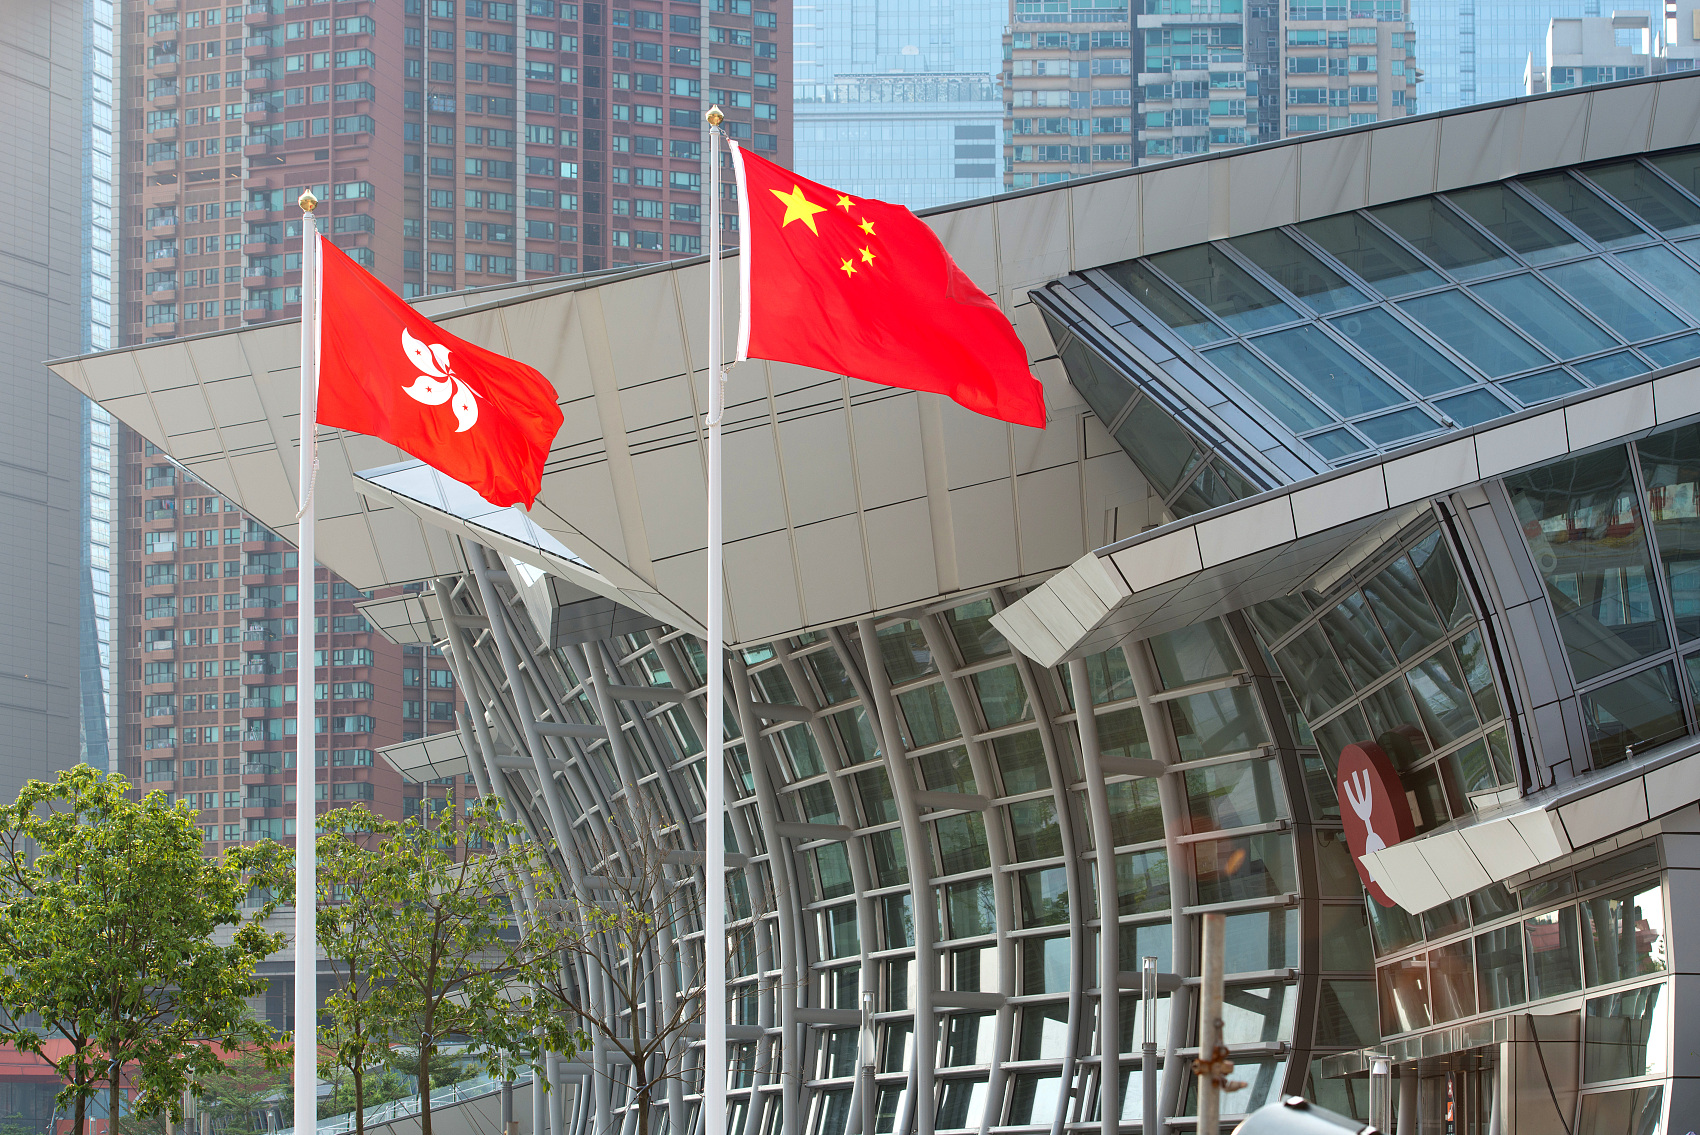 HKSAR gov't officials voice opposition to so-called US sanctions